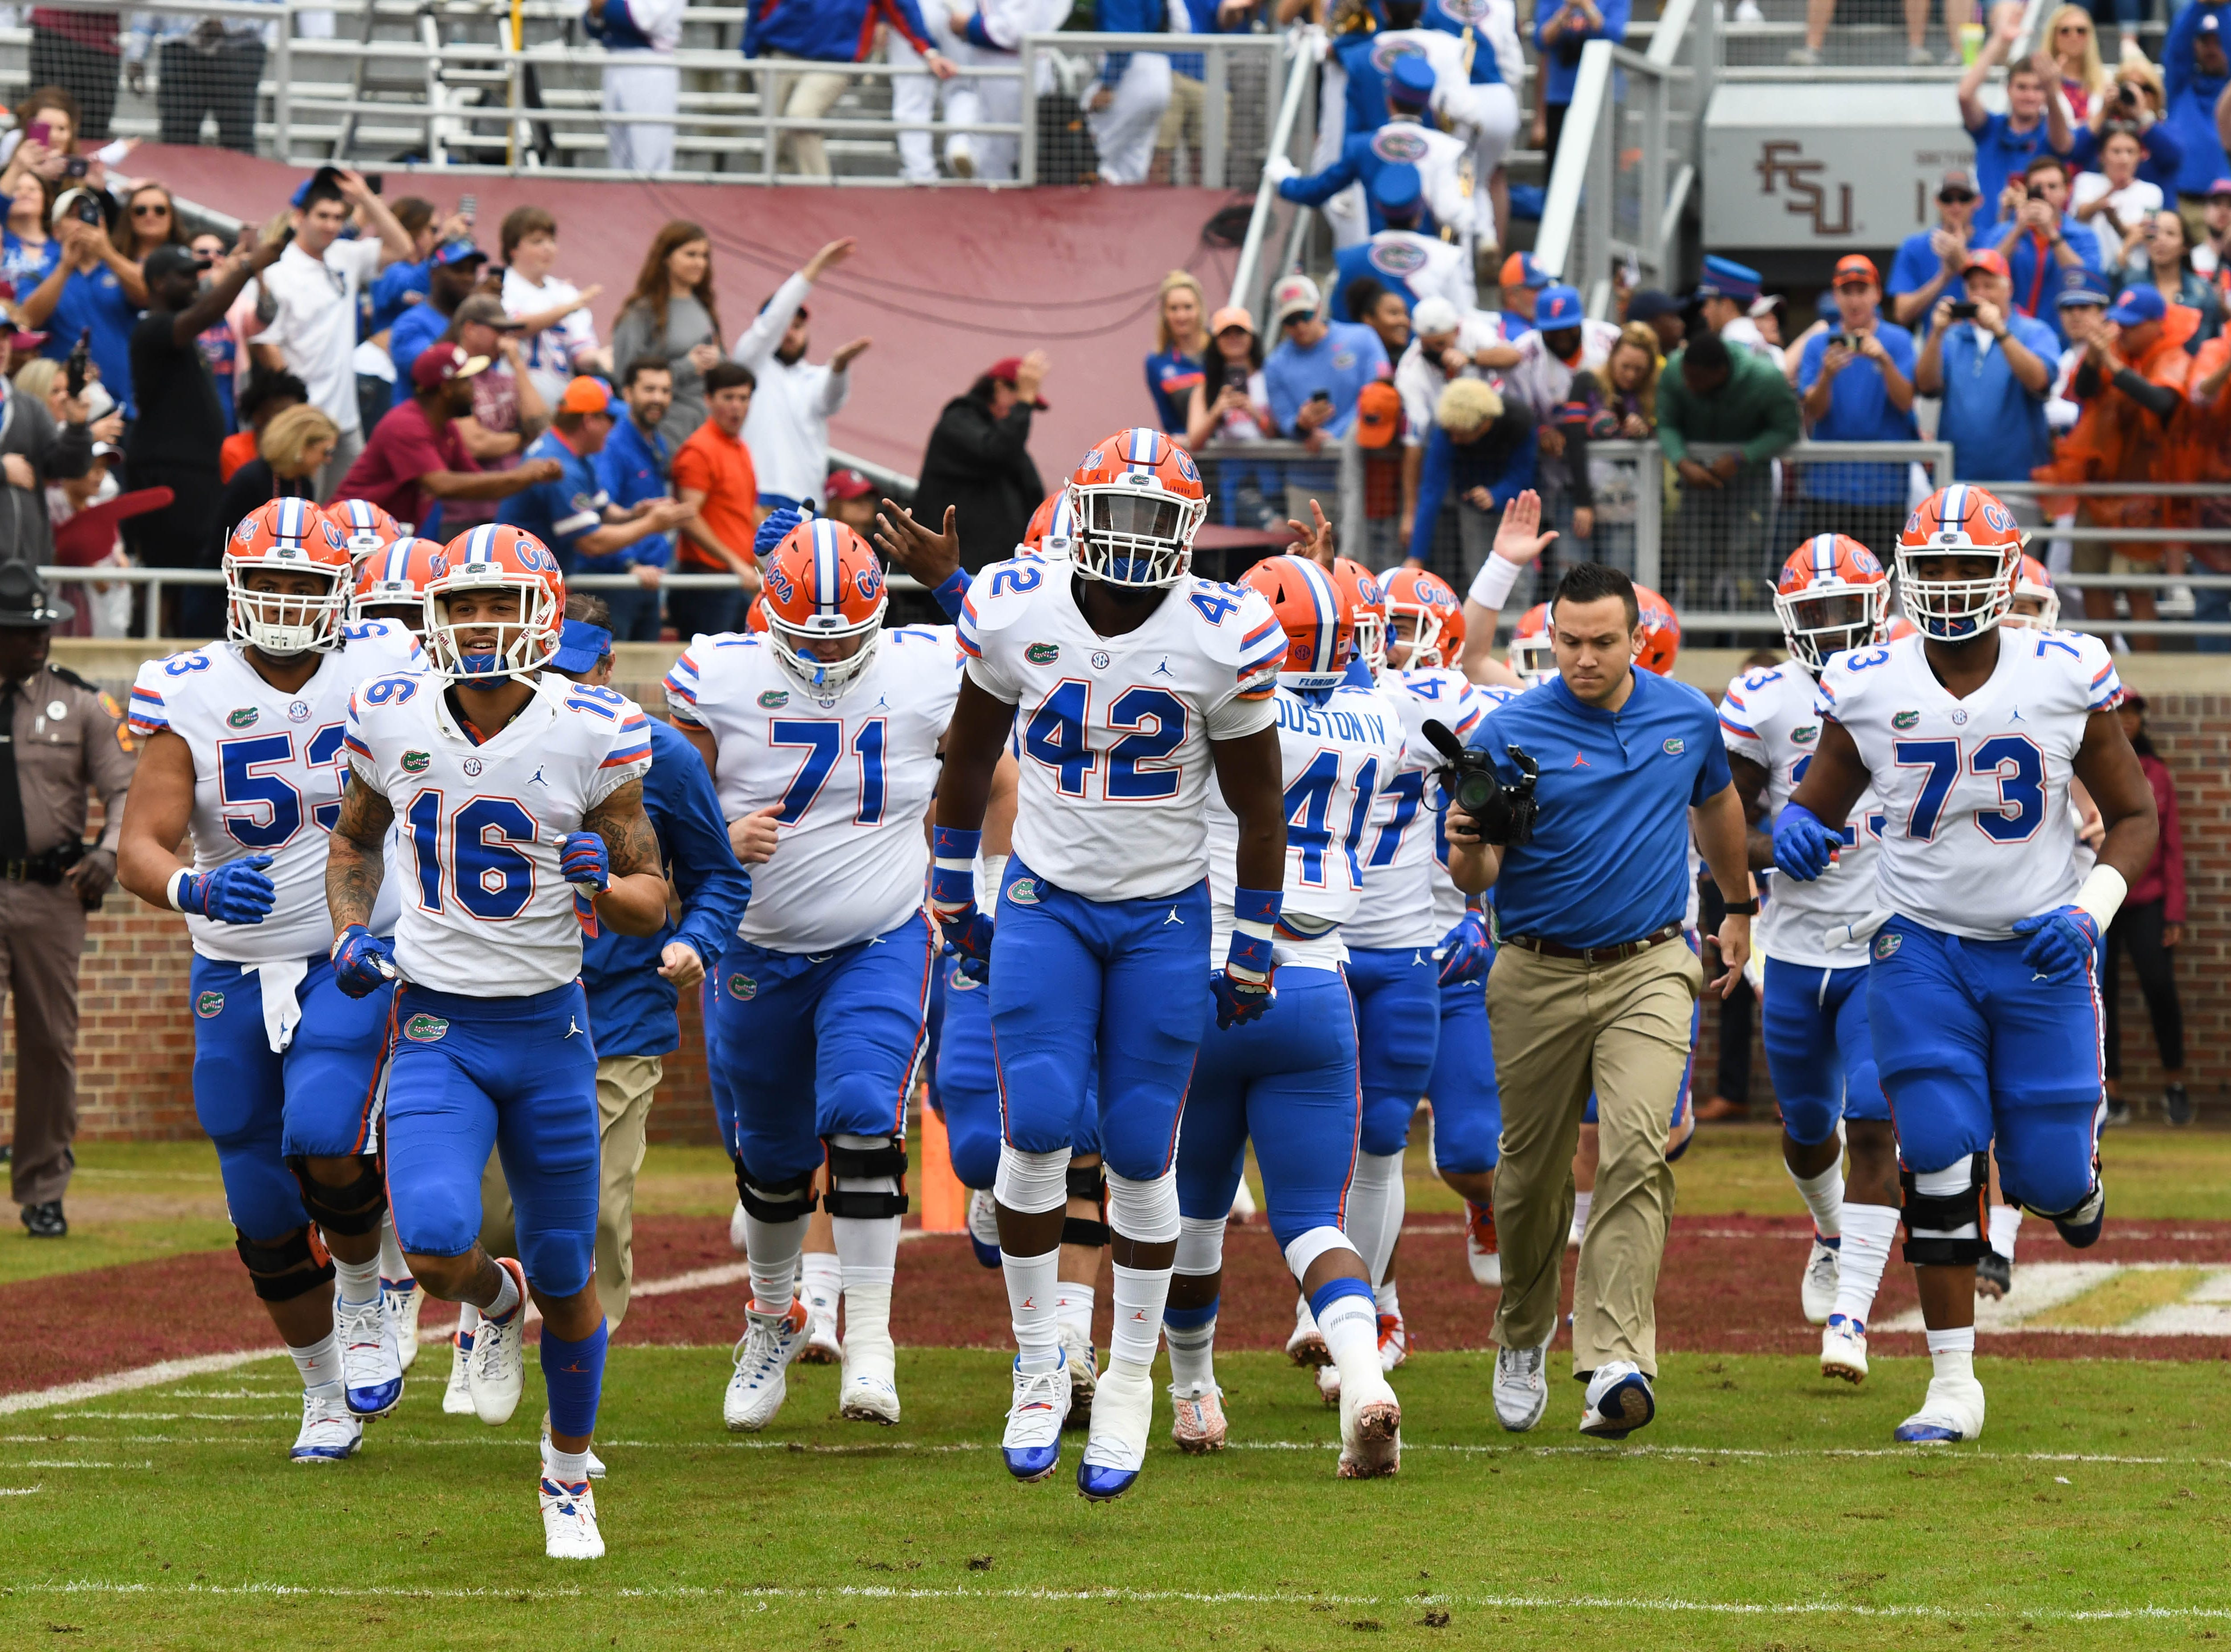 The Florida Gators running on to the field at Doak Campbell Stadium on November 24, 2018.